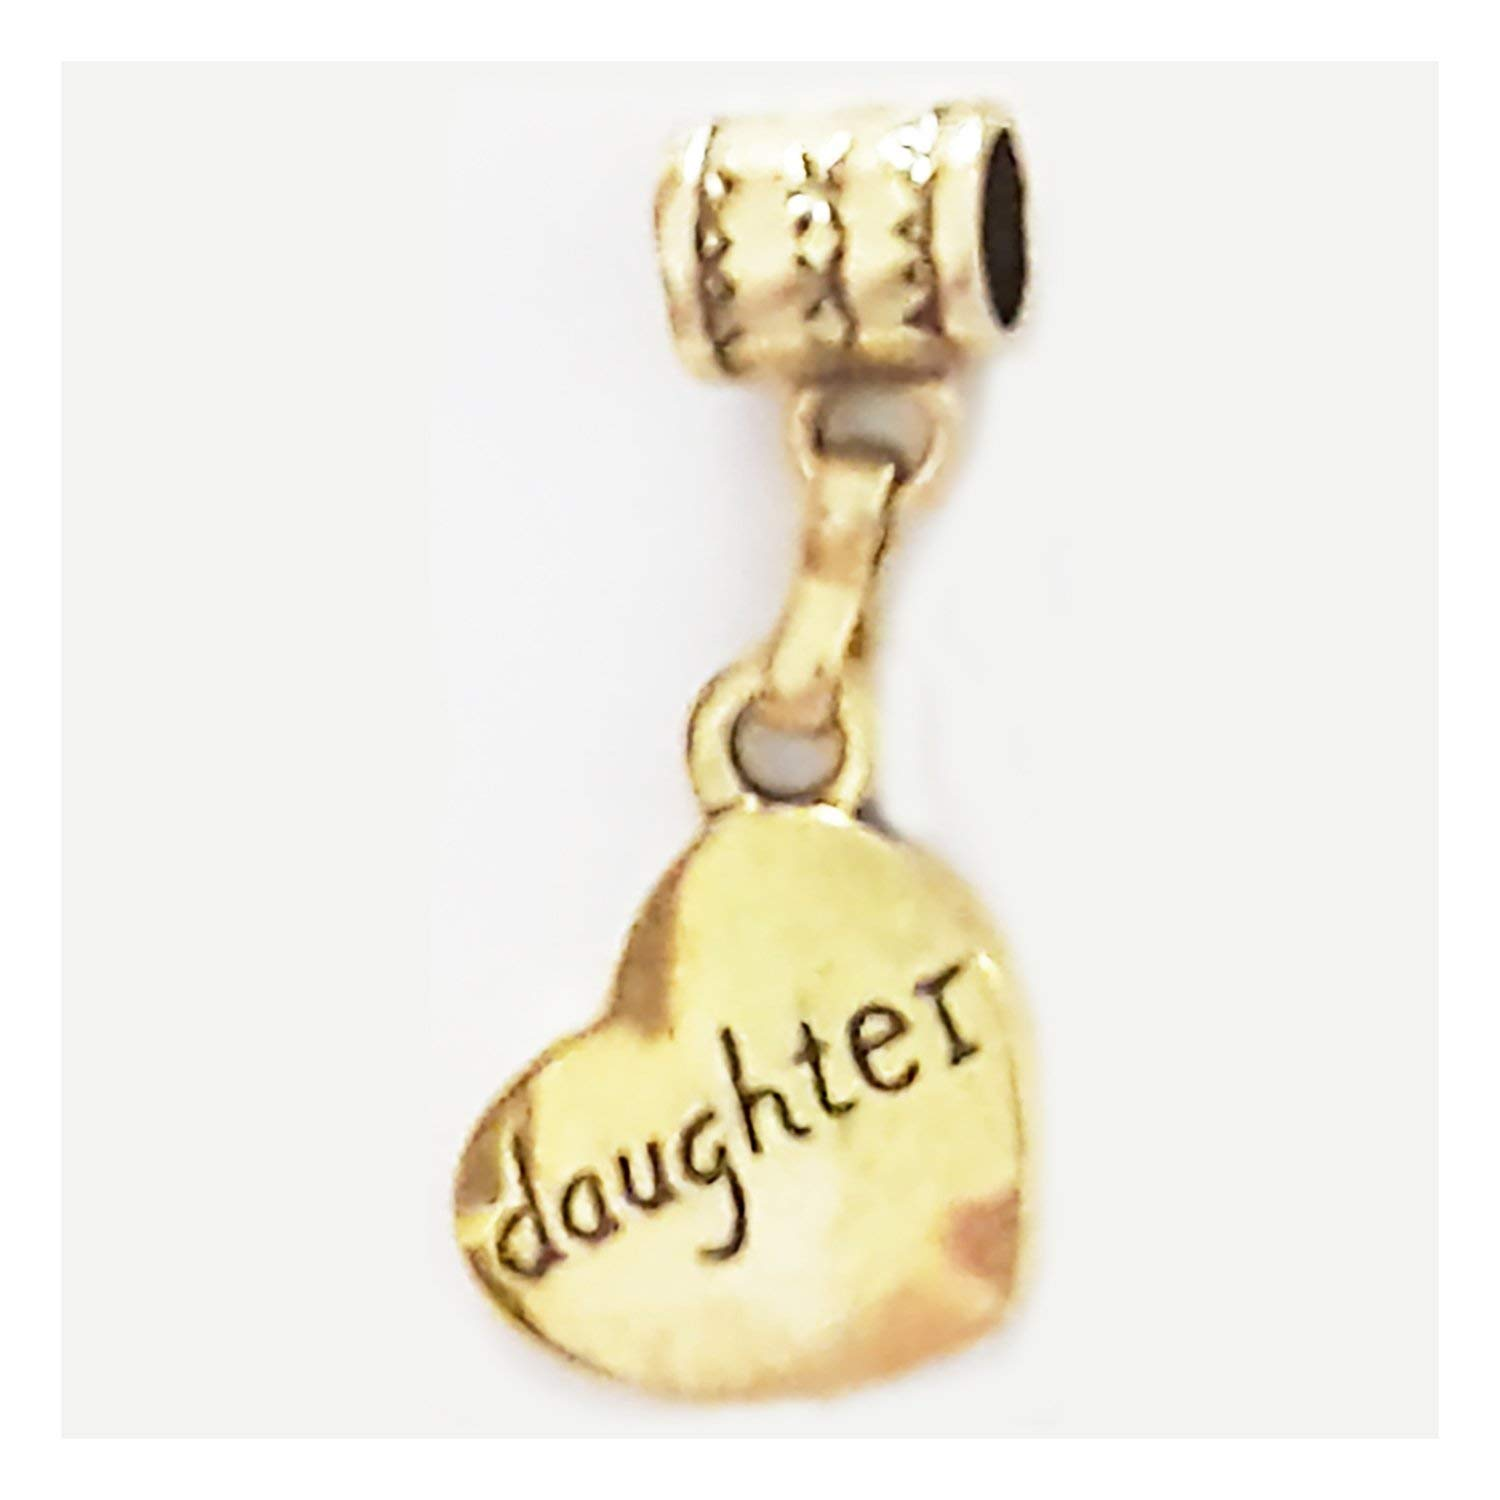 """Daughter"" Gold-Plated Heart-shaped Hanging charm by Mossy Cabin for modern large hole snake chain charm bracelets, or add to a neck chain, pendant necklace or key chain"